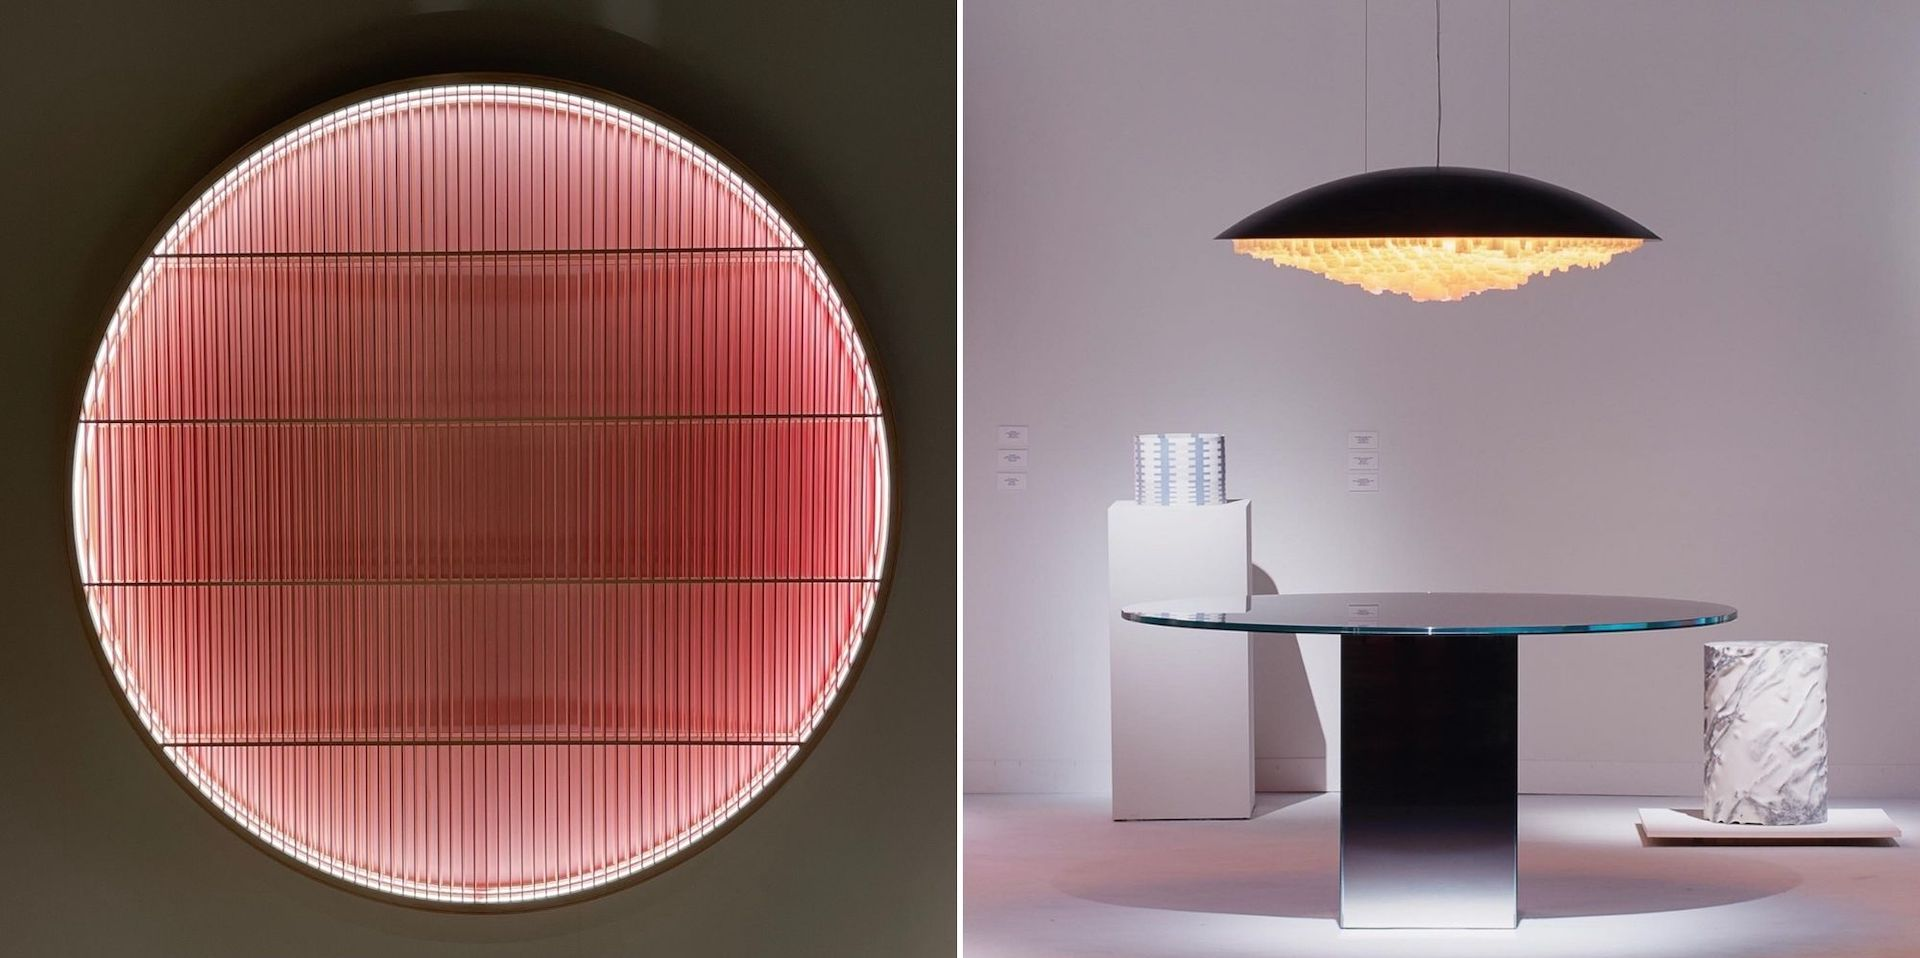 """Two unexpected light forms presented by Galerie Maria Wettergren: Kurenai Light Object by Ane Lykke (Photo © Lee Mindel) and City Light by Boris Berlin & Daniel Berlin (Photo © James Harris). """"A delightful representation of the role that light plays in Scandinavian design."""""""